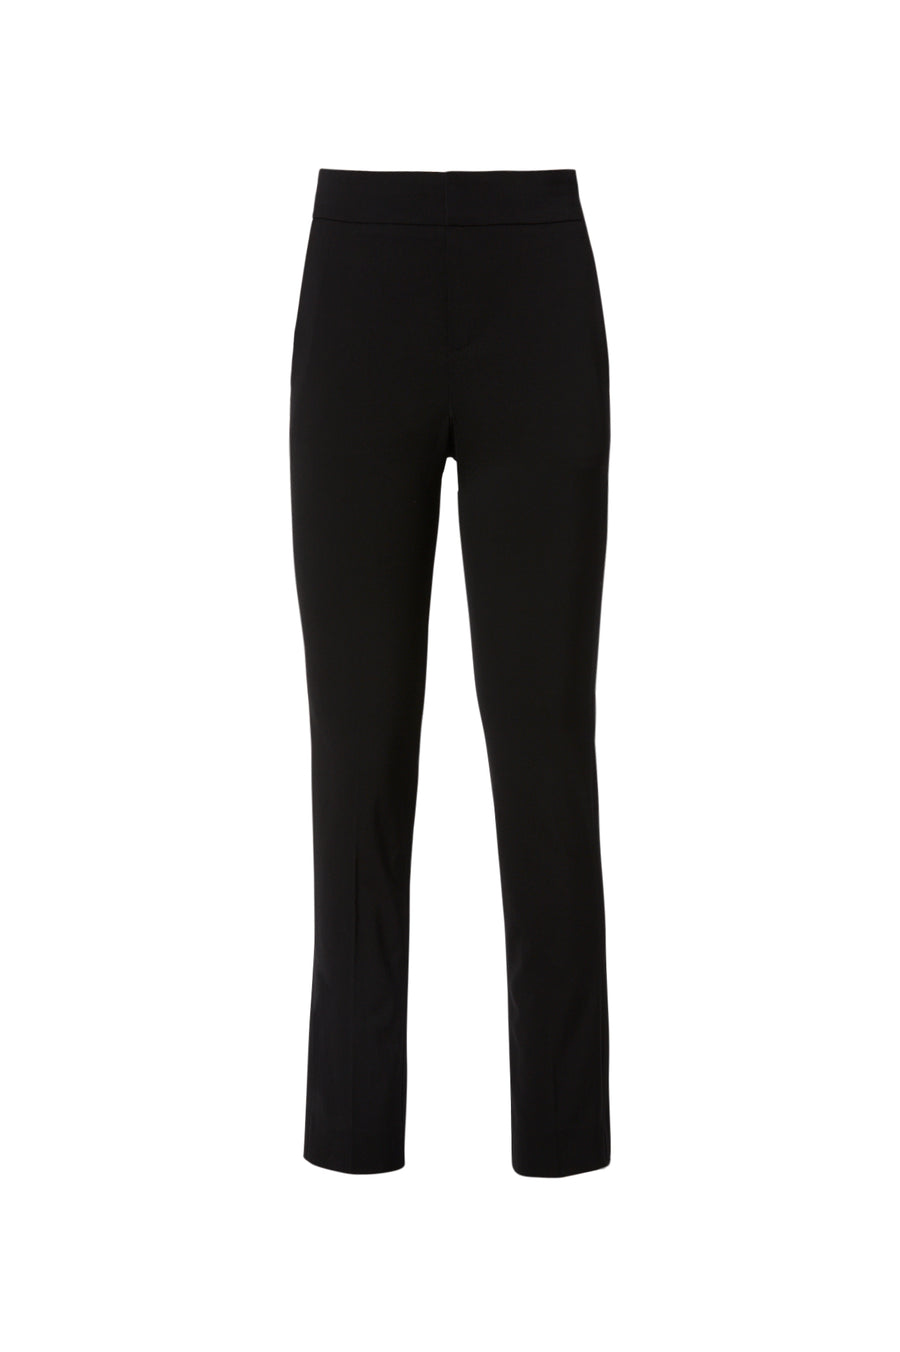 Tailored Slim Cropped Trouser, sits high on the waist, zip and button fastening, slim-leg silhouette, sits just above the ankle, Color Black